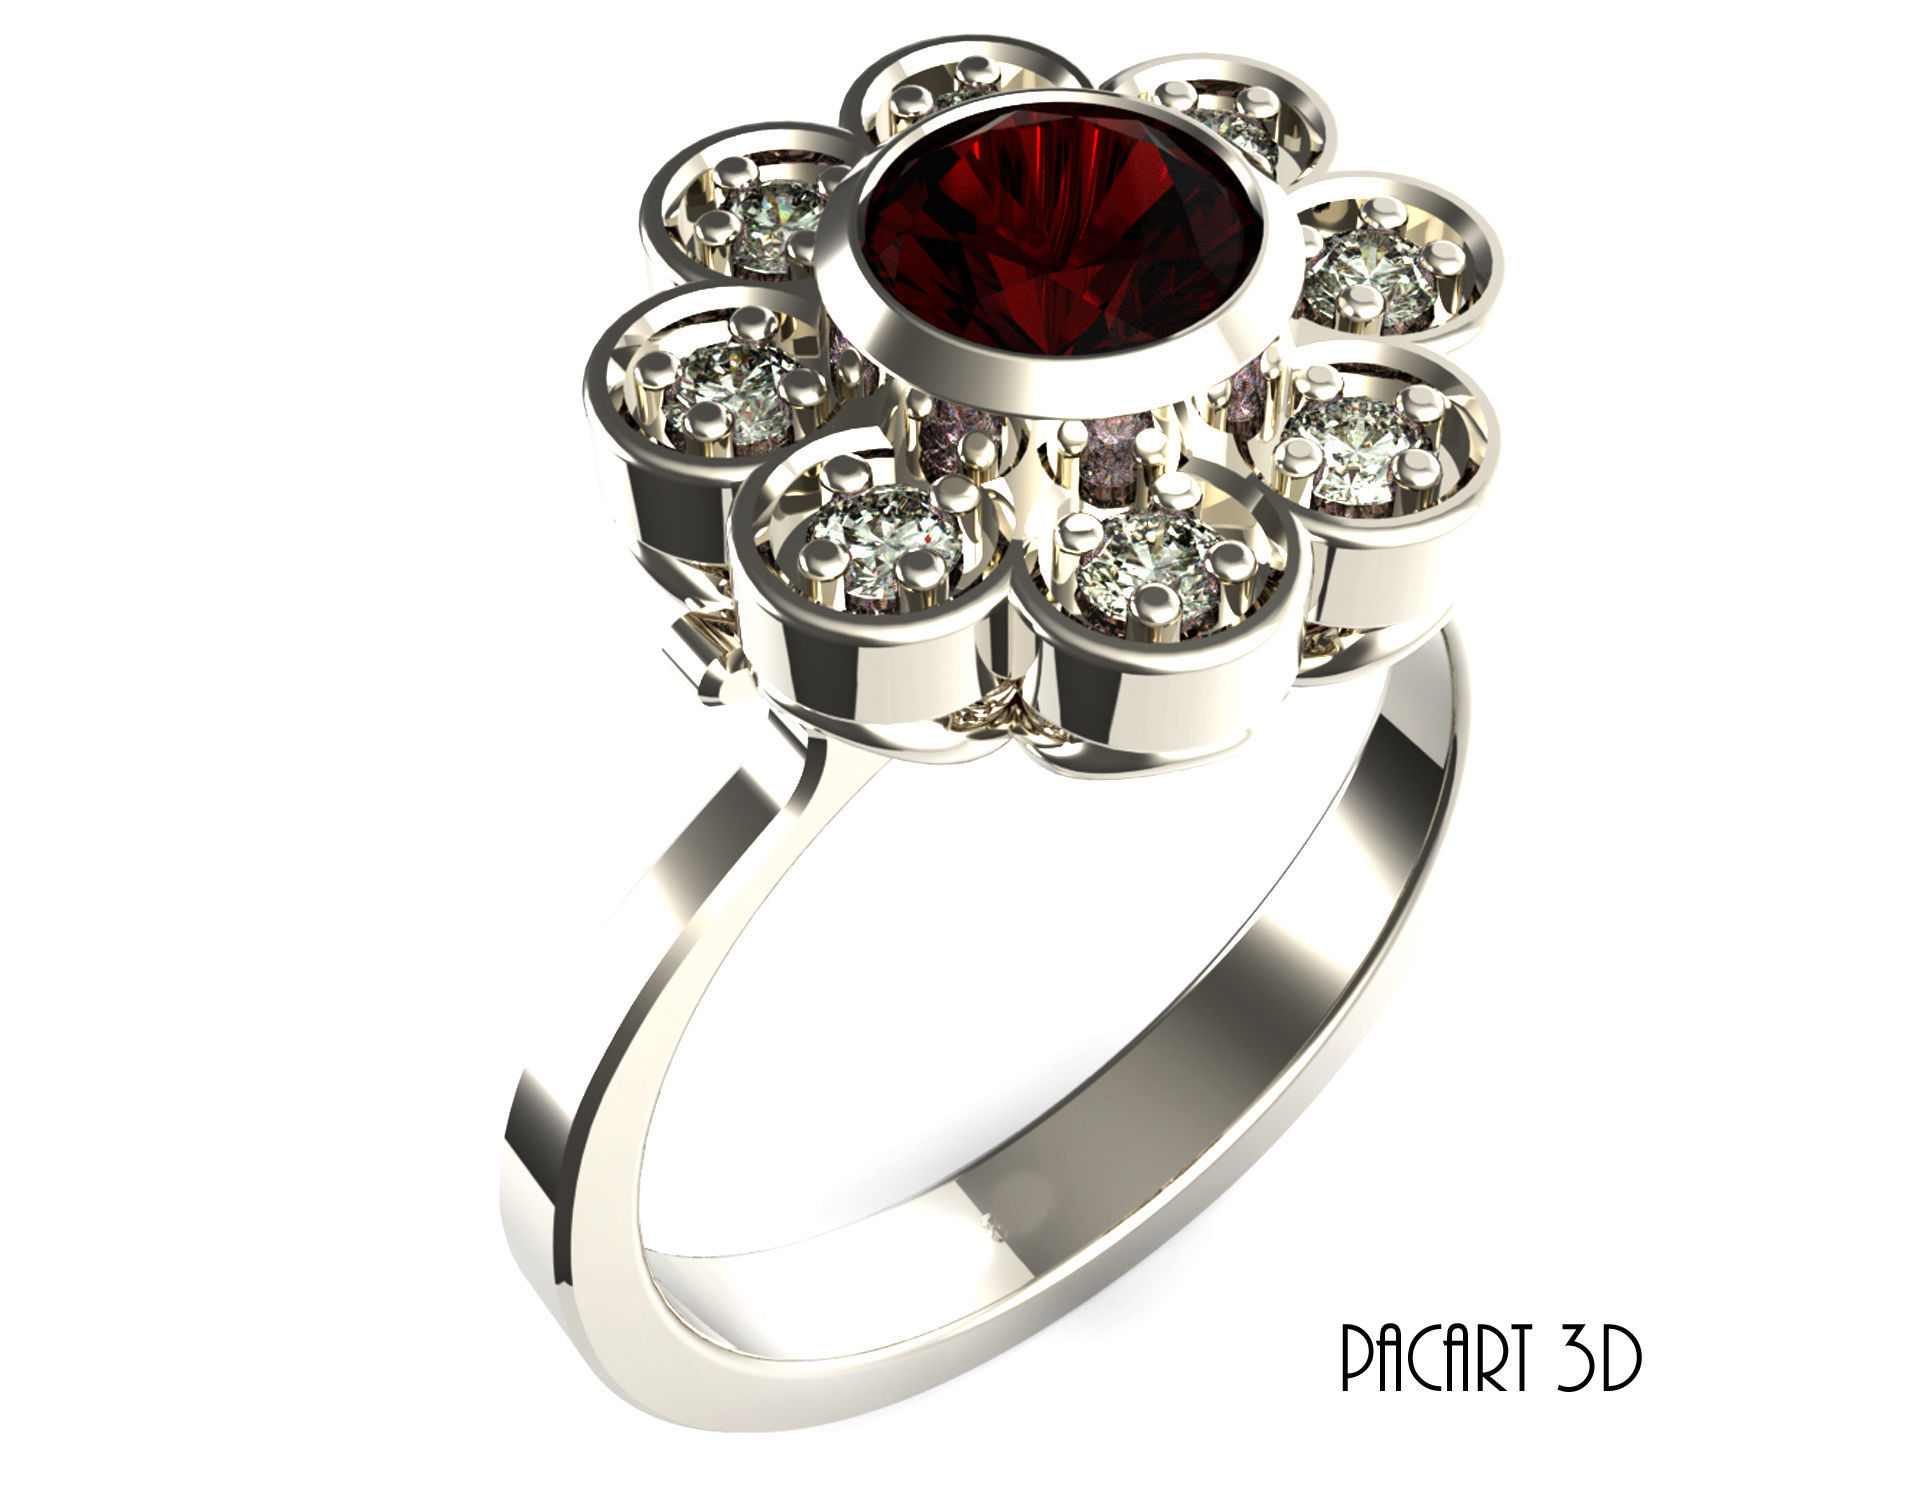 Engagement Or Wedding Ring Stl Digital Design For Jewelry Model 6